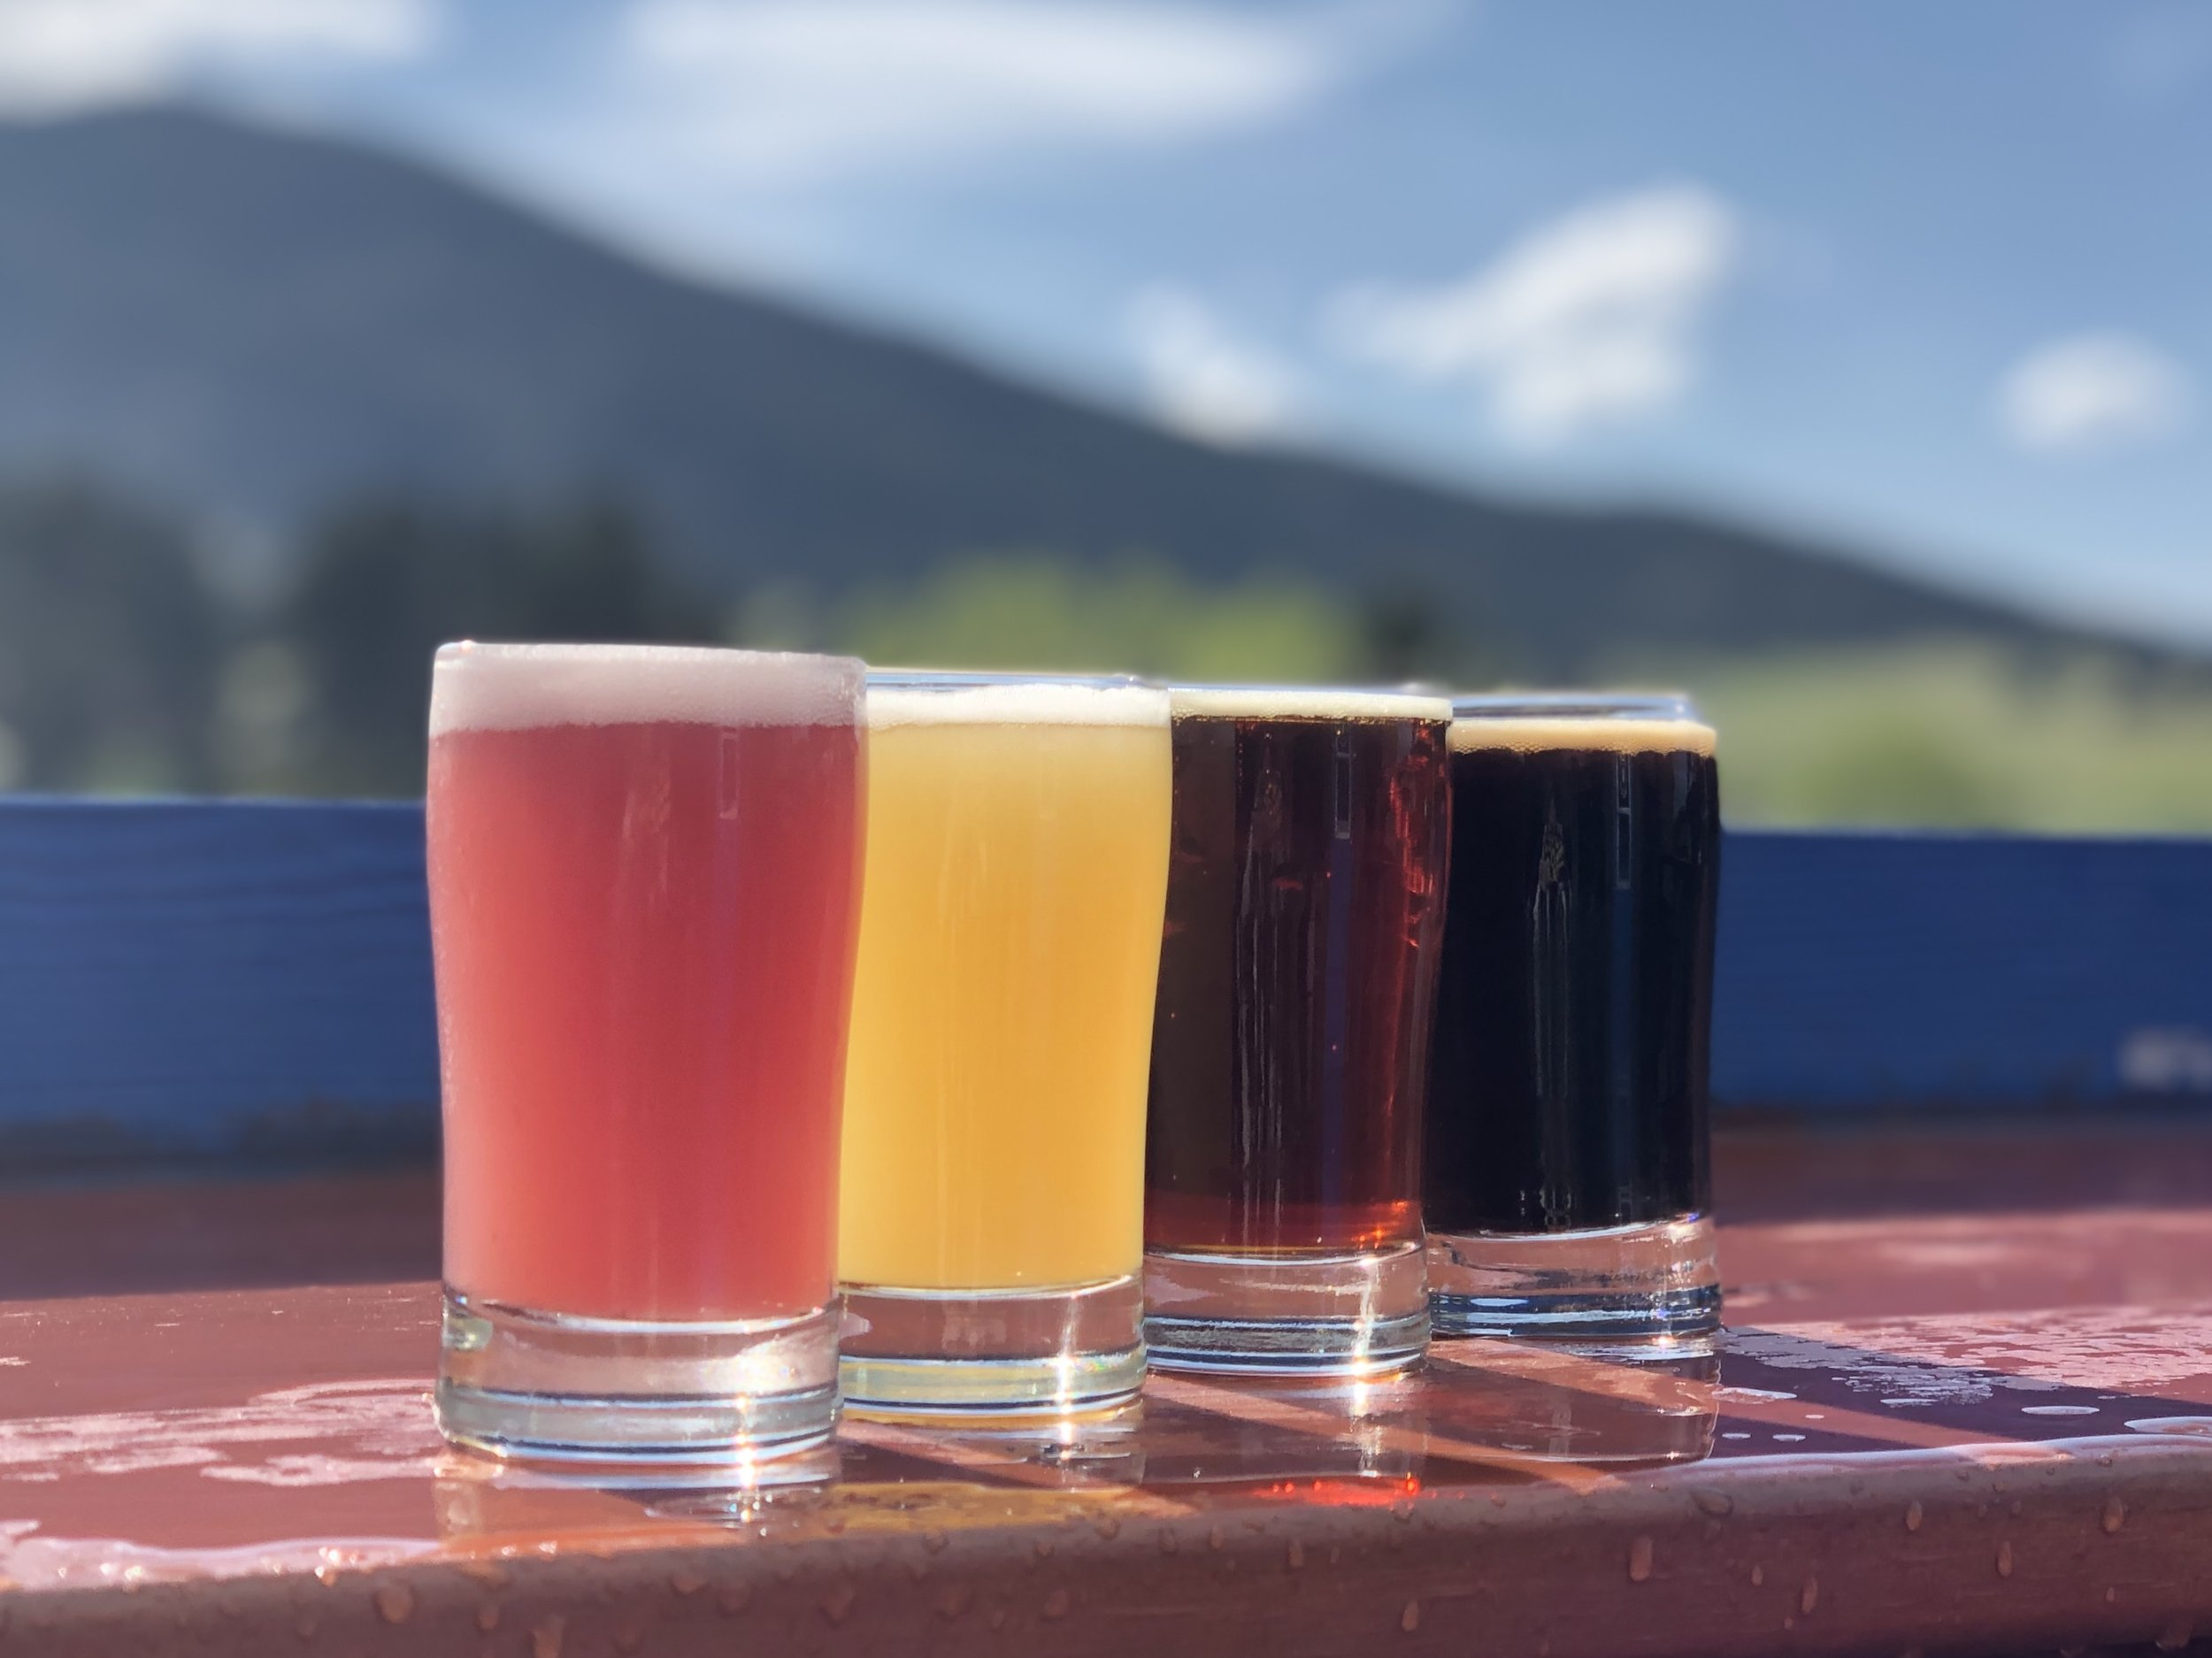 A colorful beer flight at Evergreen Brewery. ©Suzanne Brown 2019